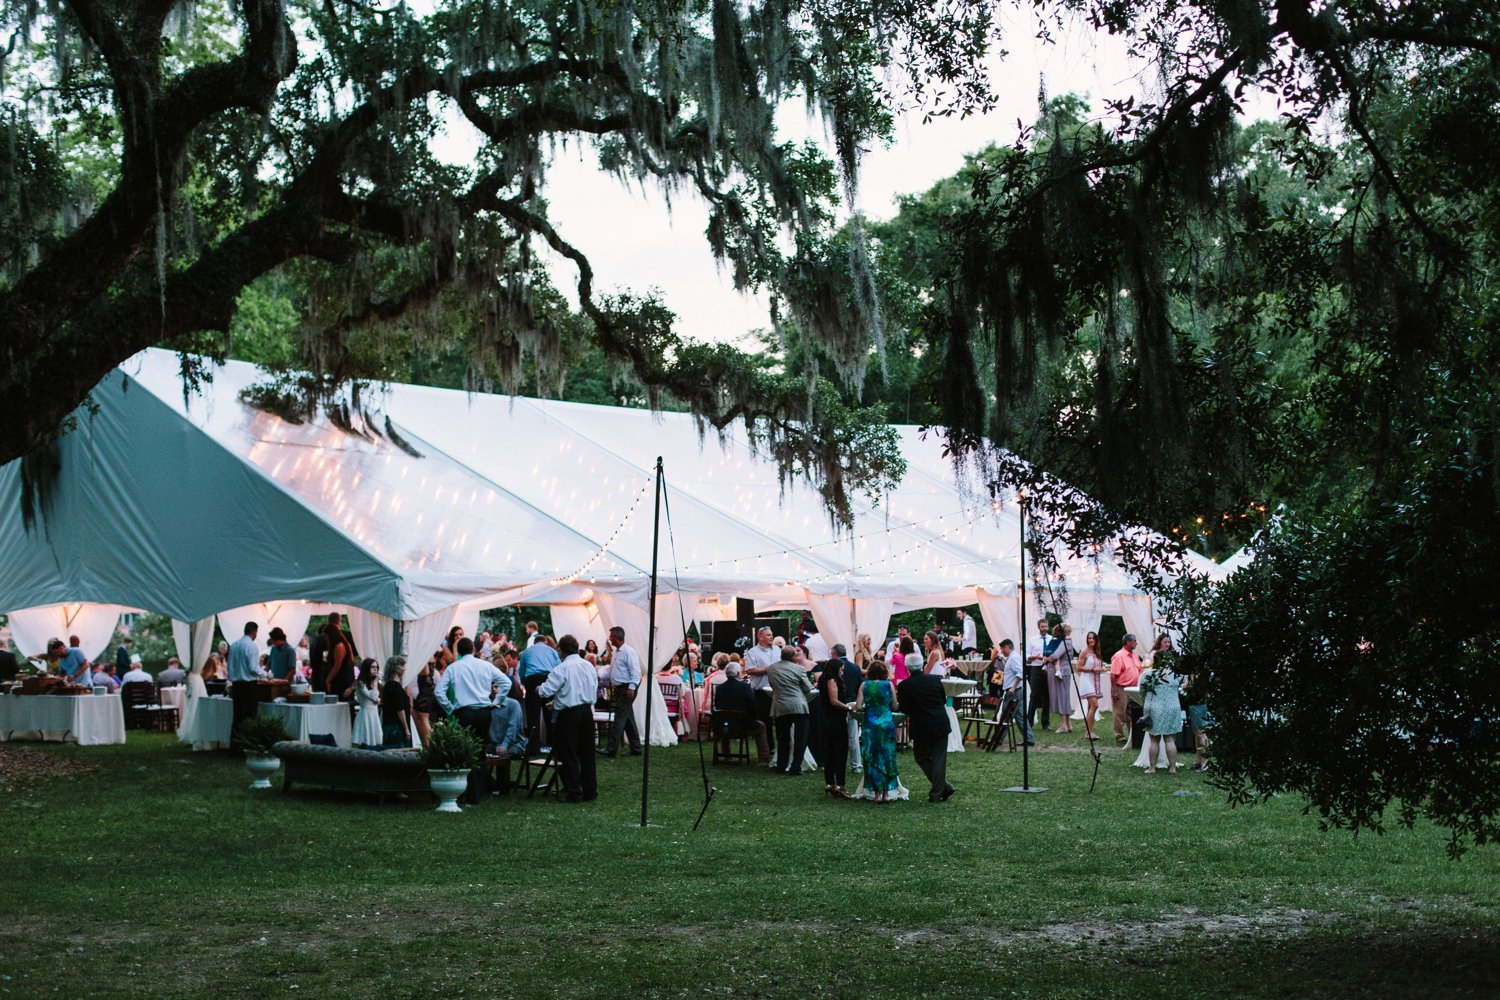 Lindsey_A_Miller_Photography_mcleod_plantation_wedding_charleston_south_carolina_clear_tent_spring_mod_events_080.jpg